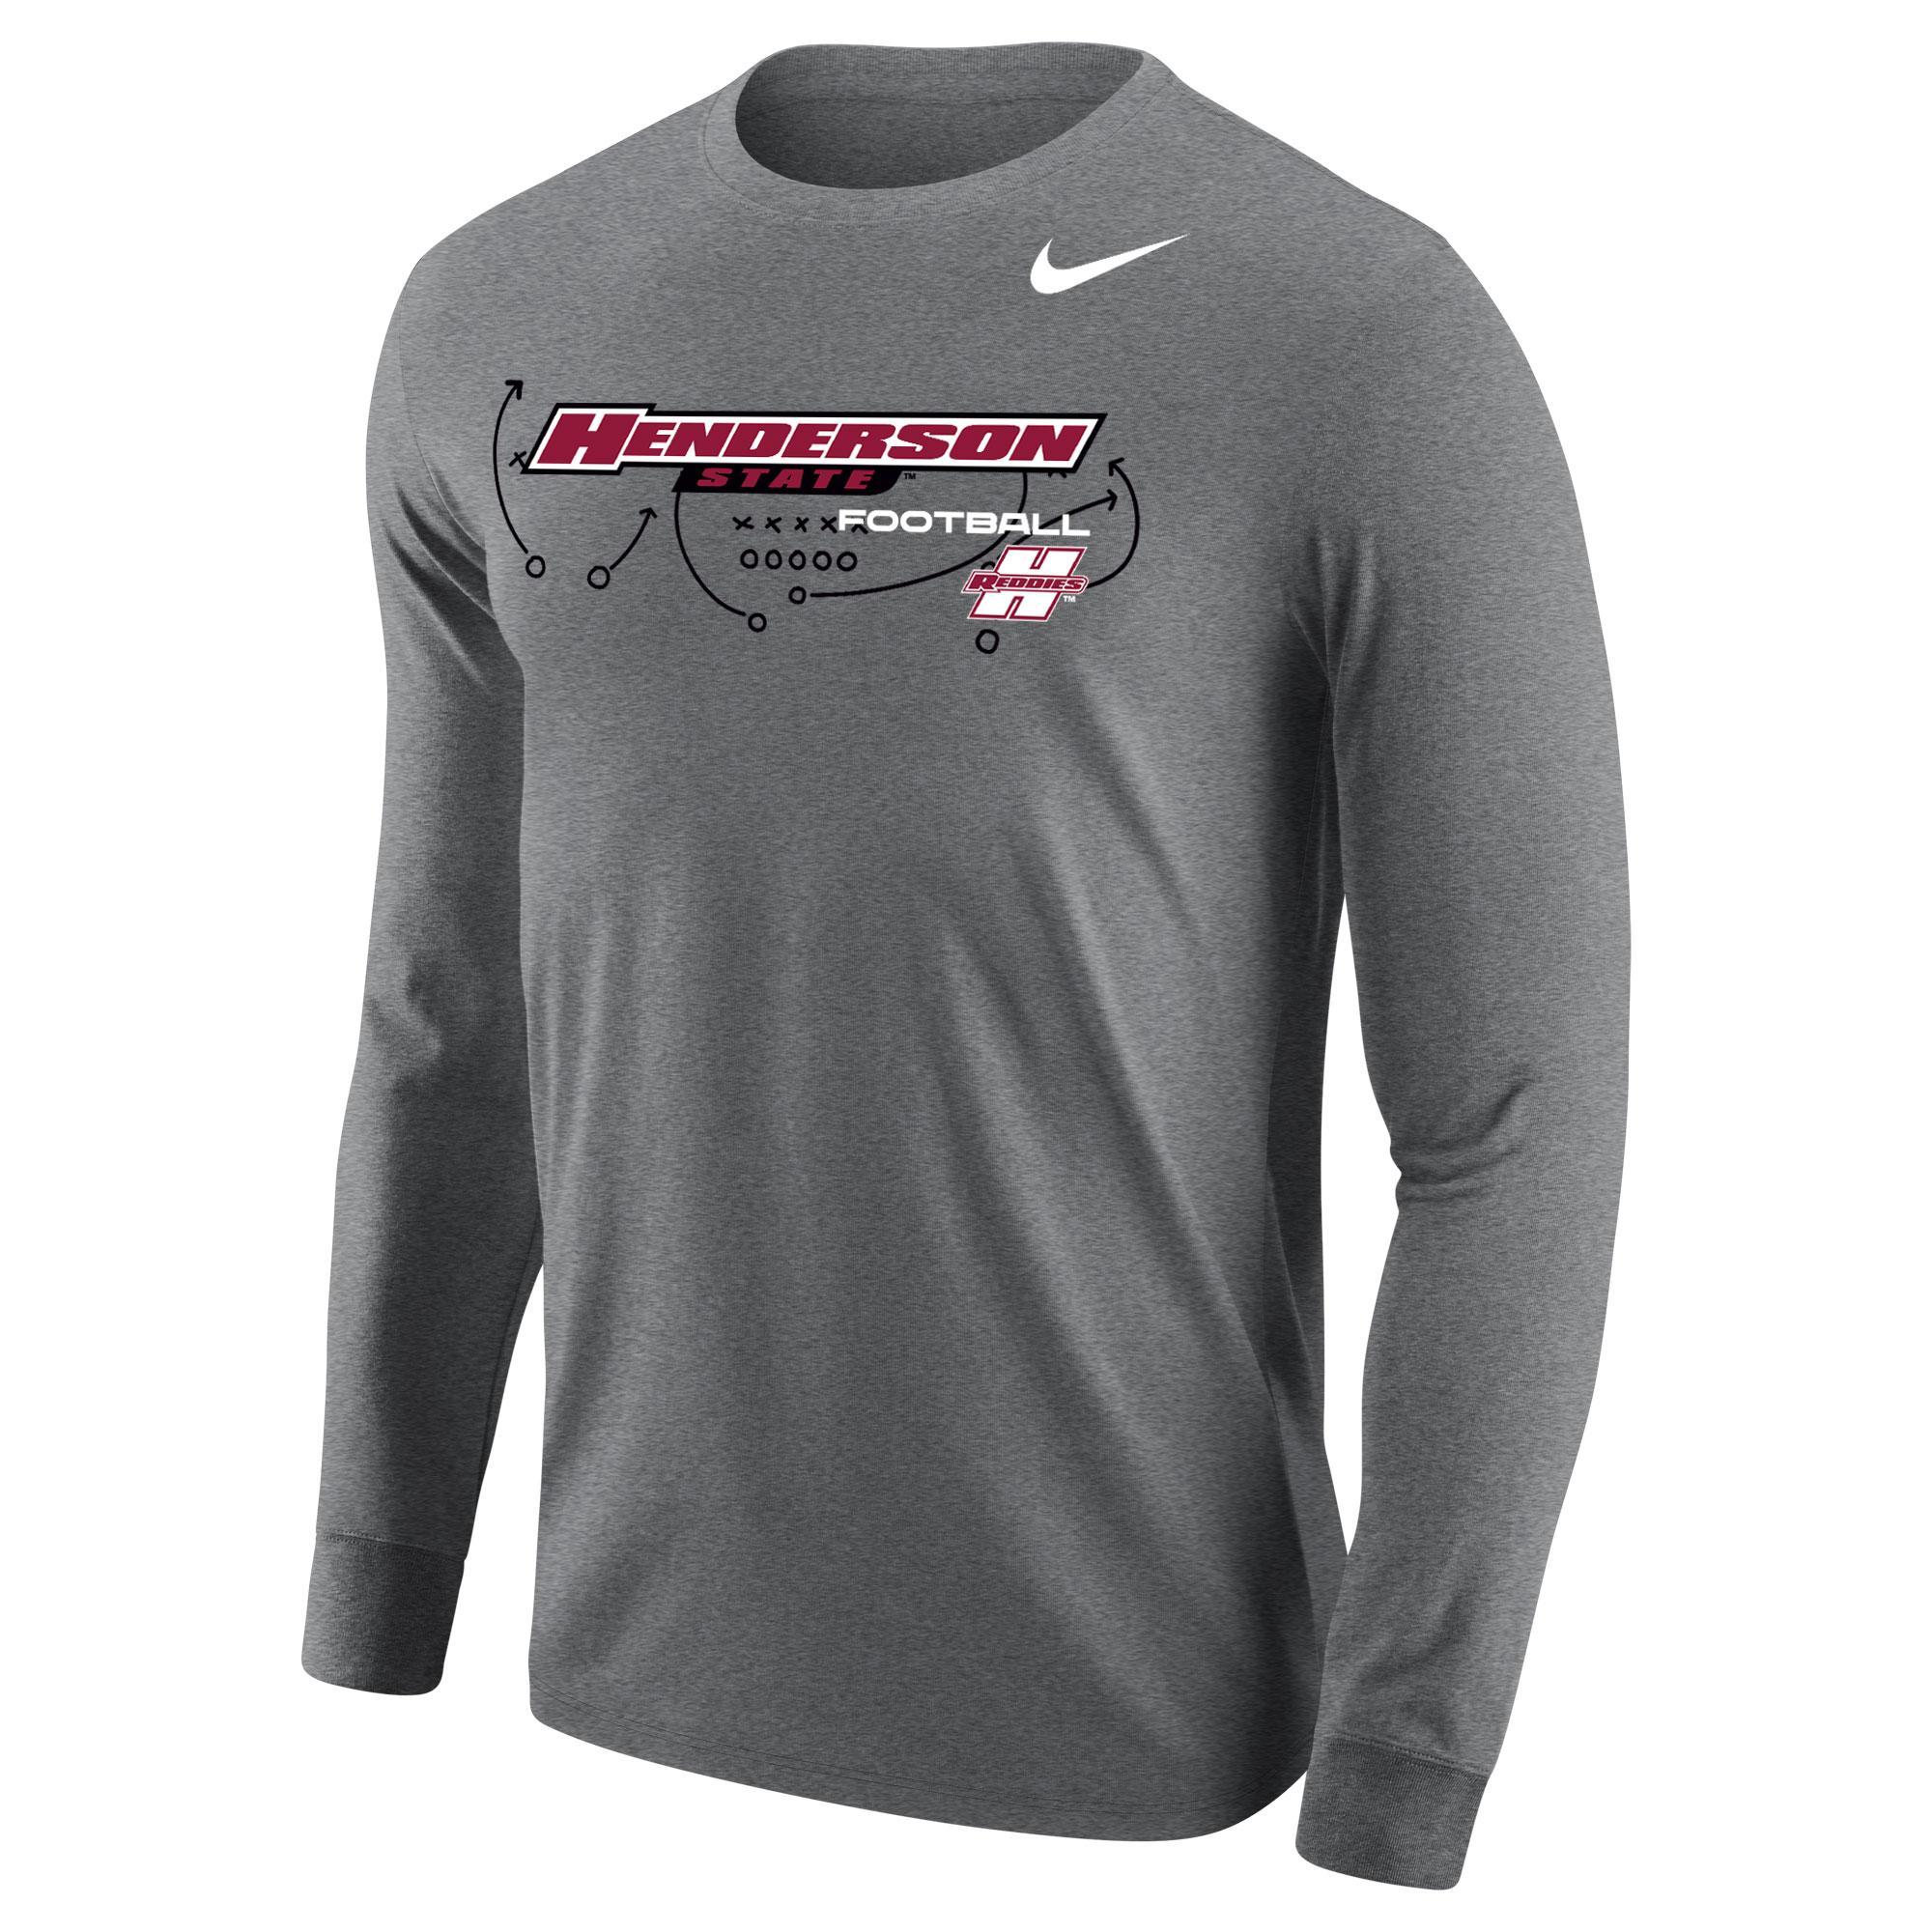 image of: Henderson State Football Core Long Sleeve T-Shirt